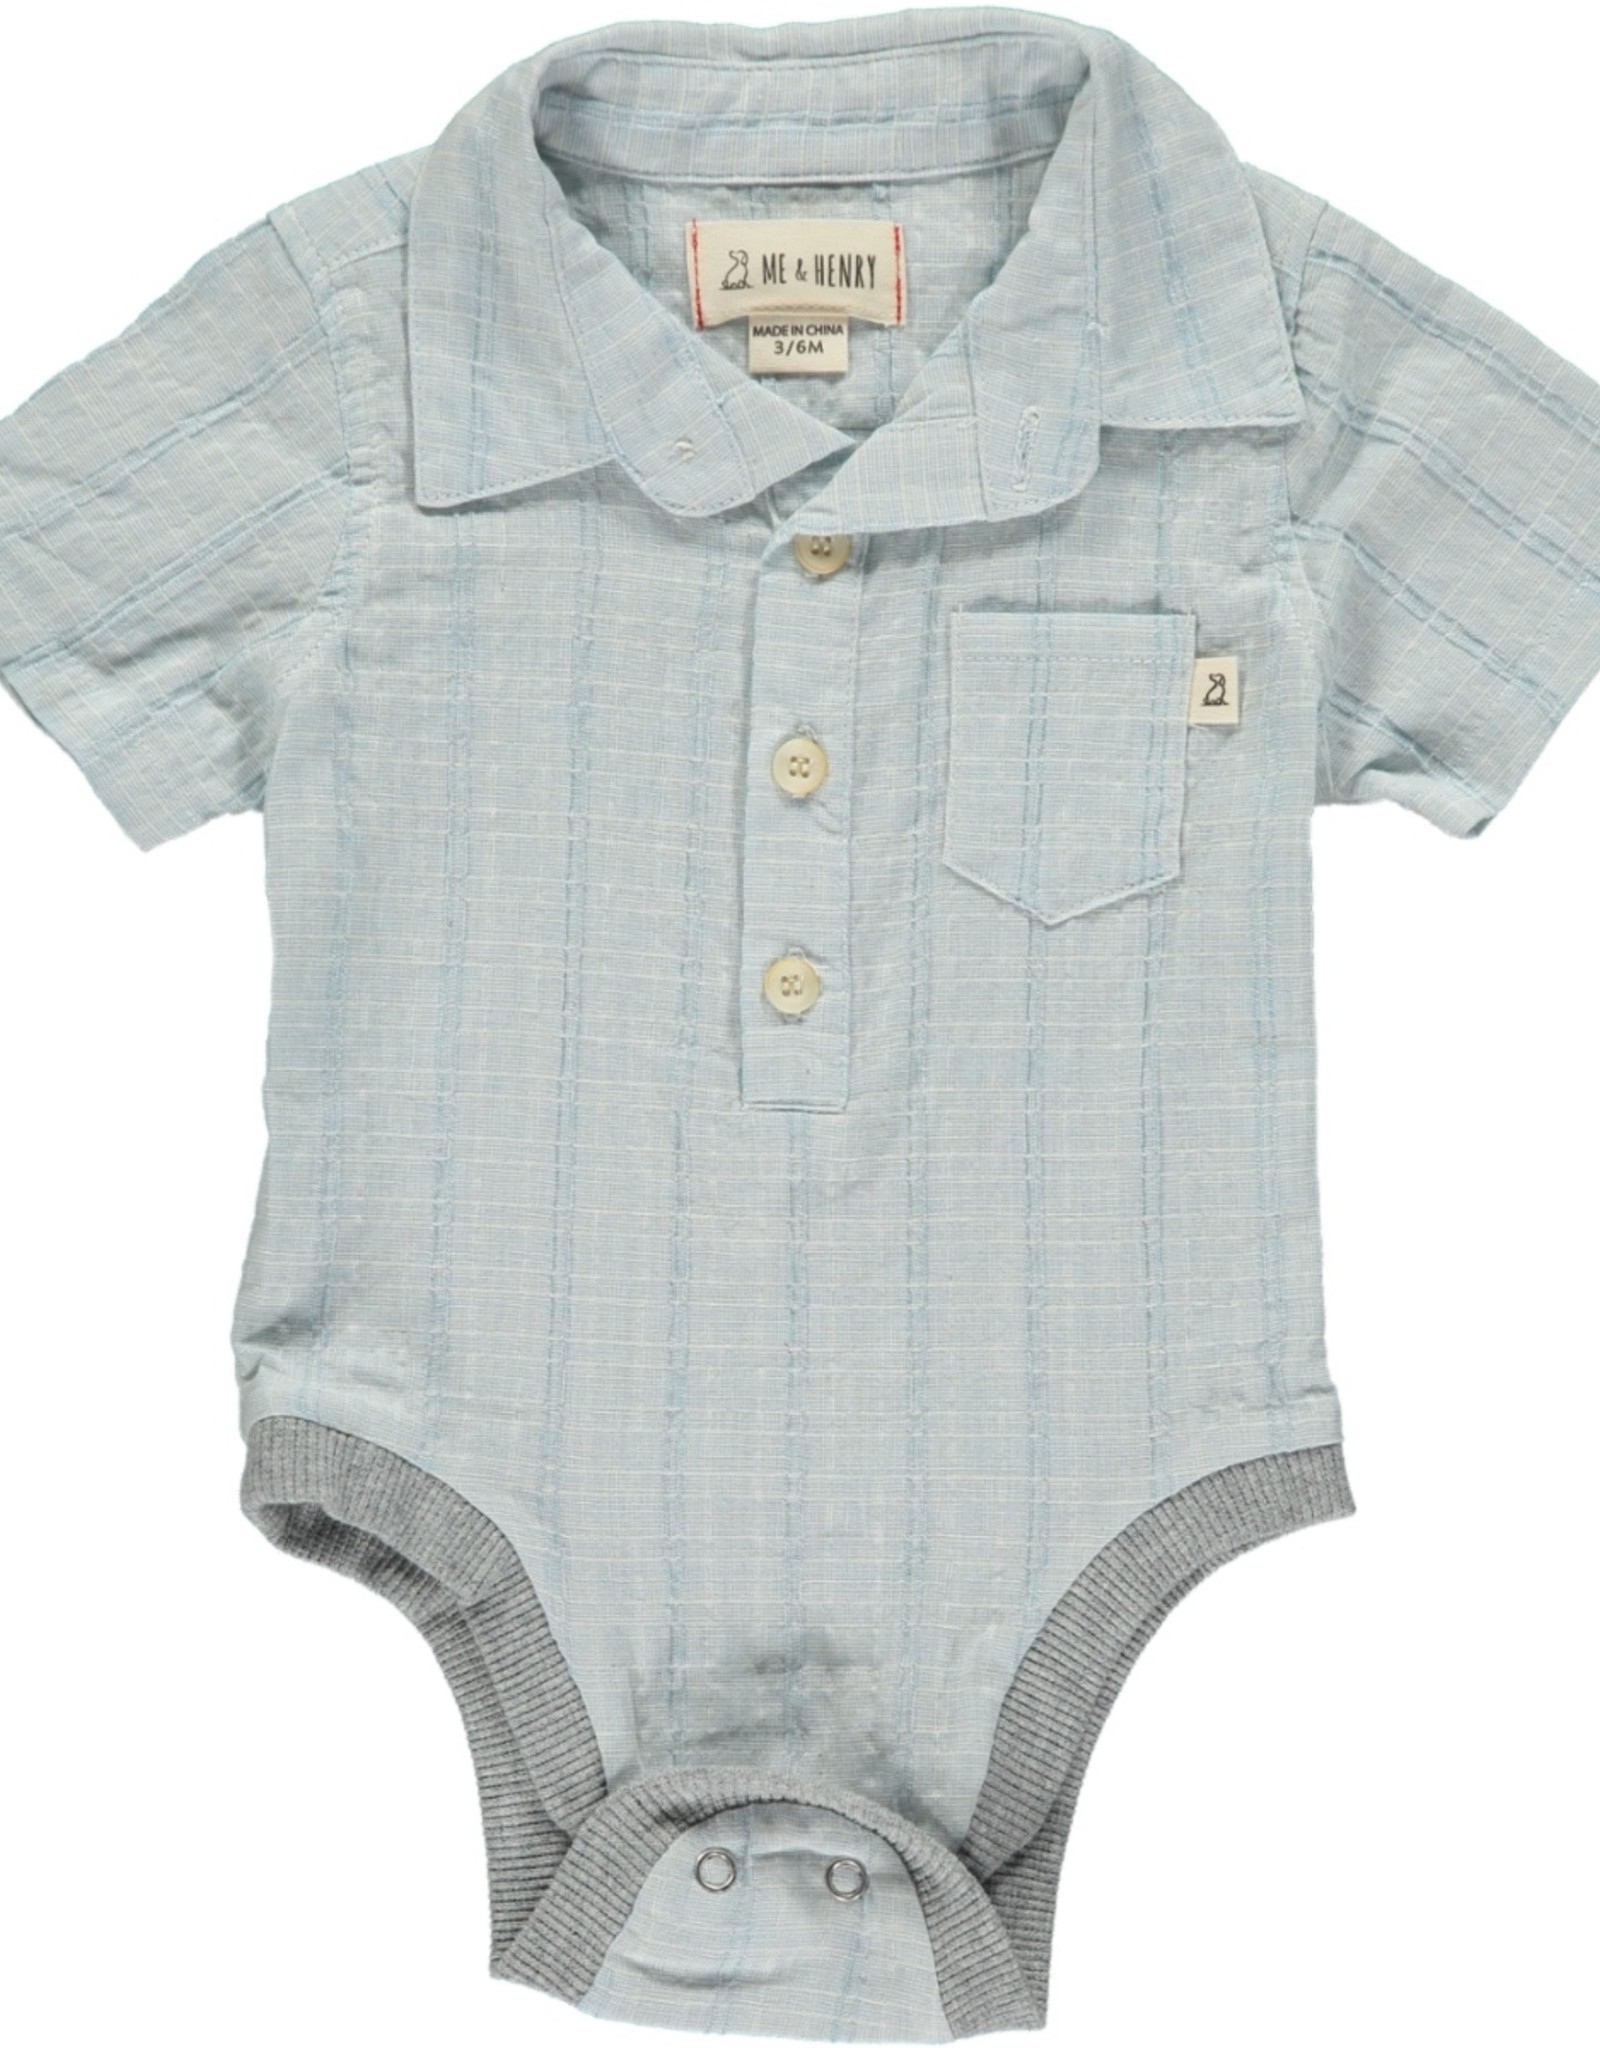 Me & Henry button down onesie- pale blue